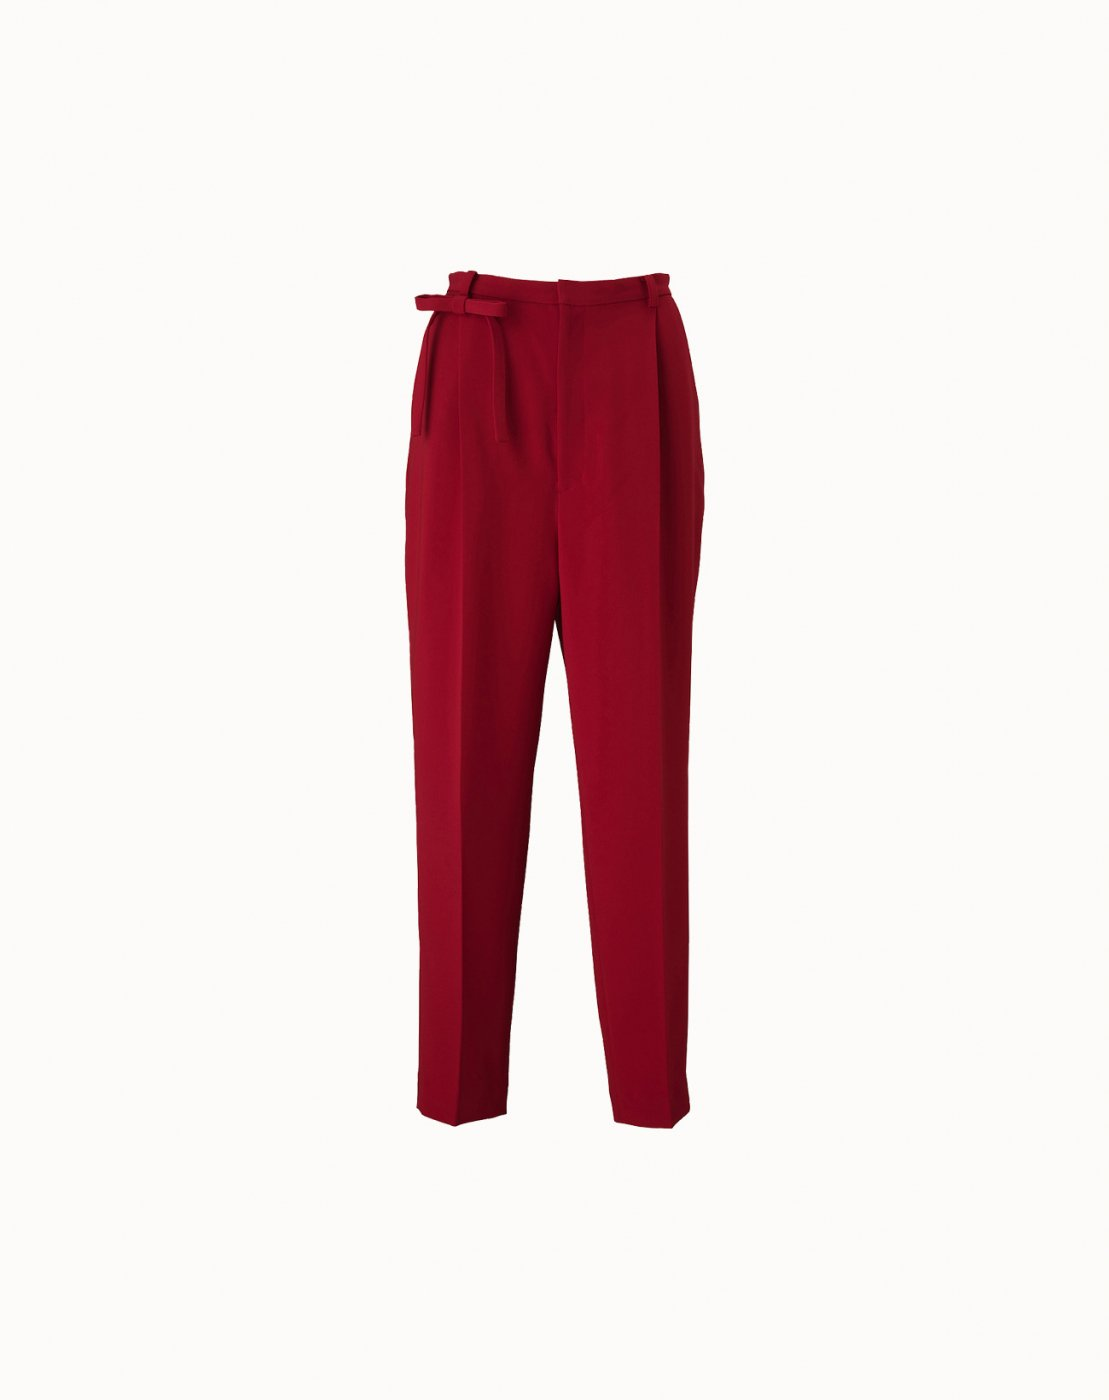 leur logette - Double Georgette Pants - Red